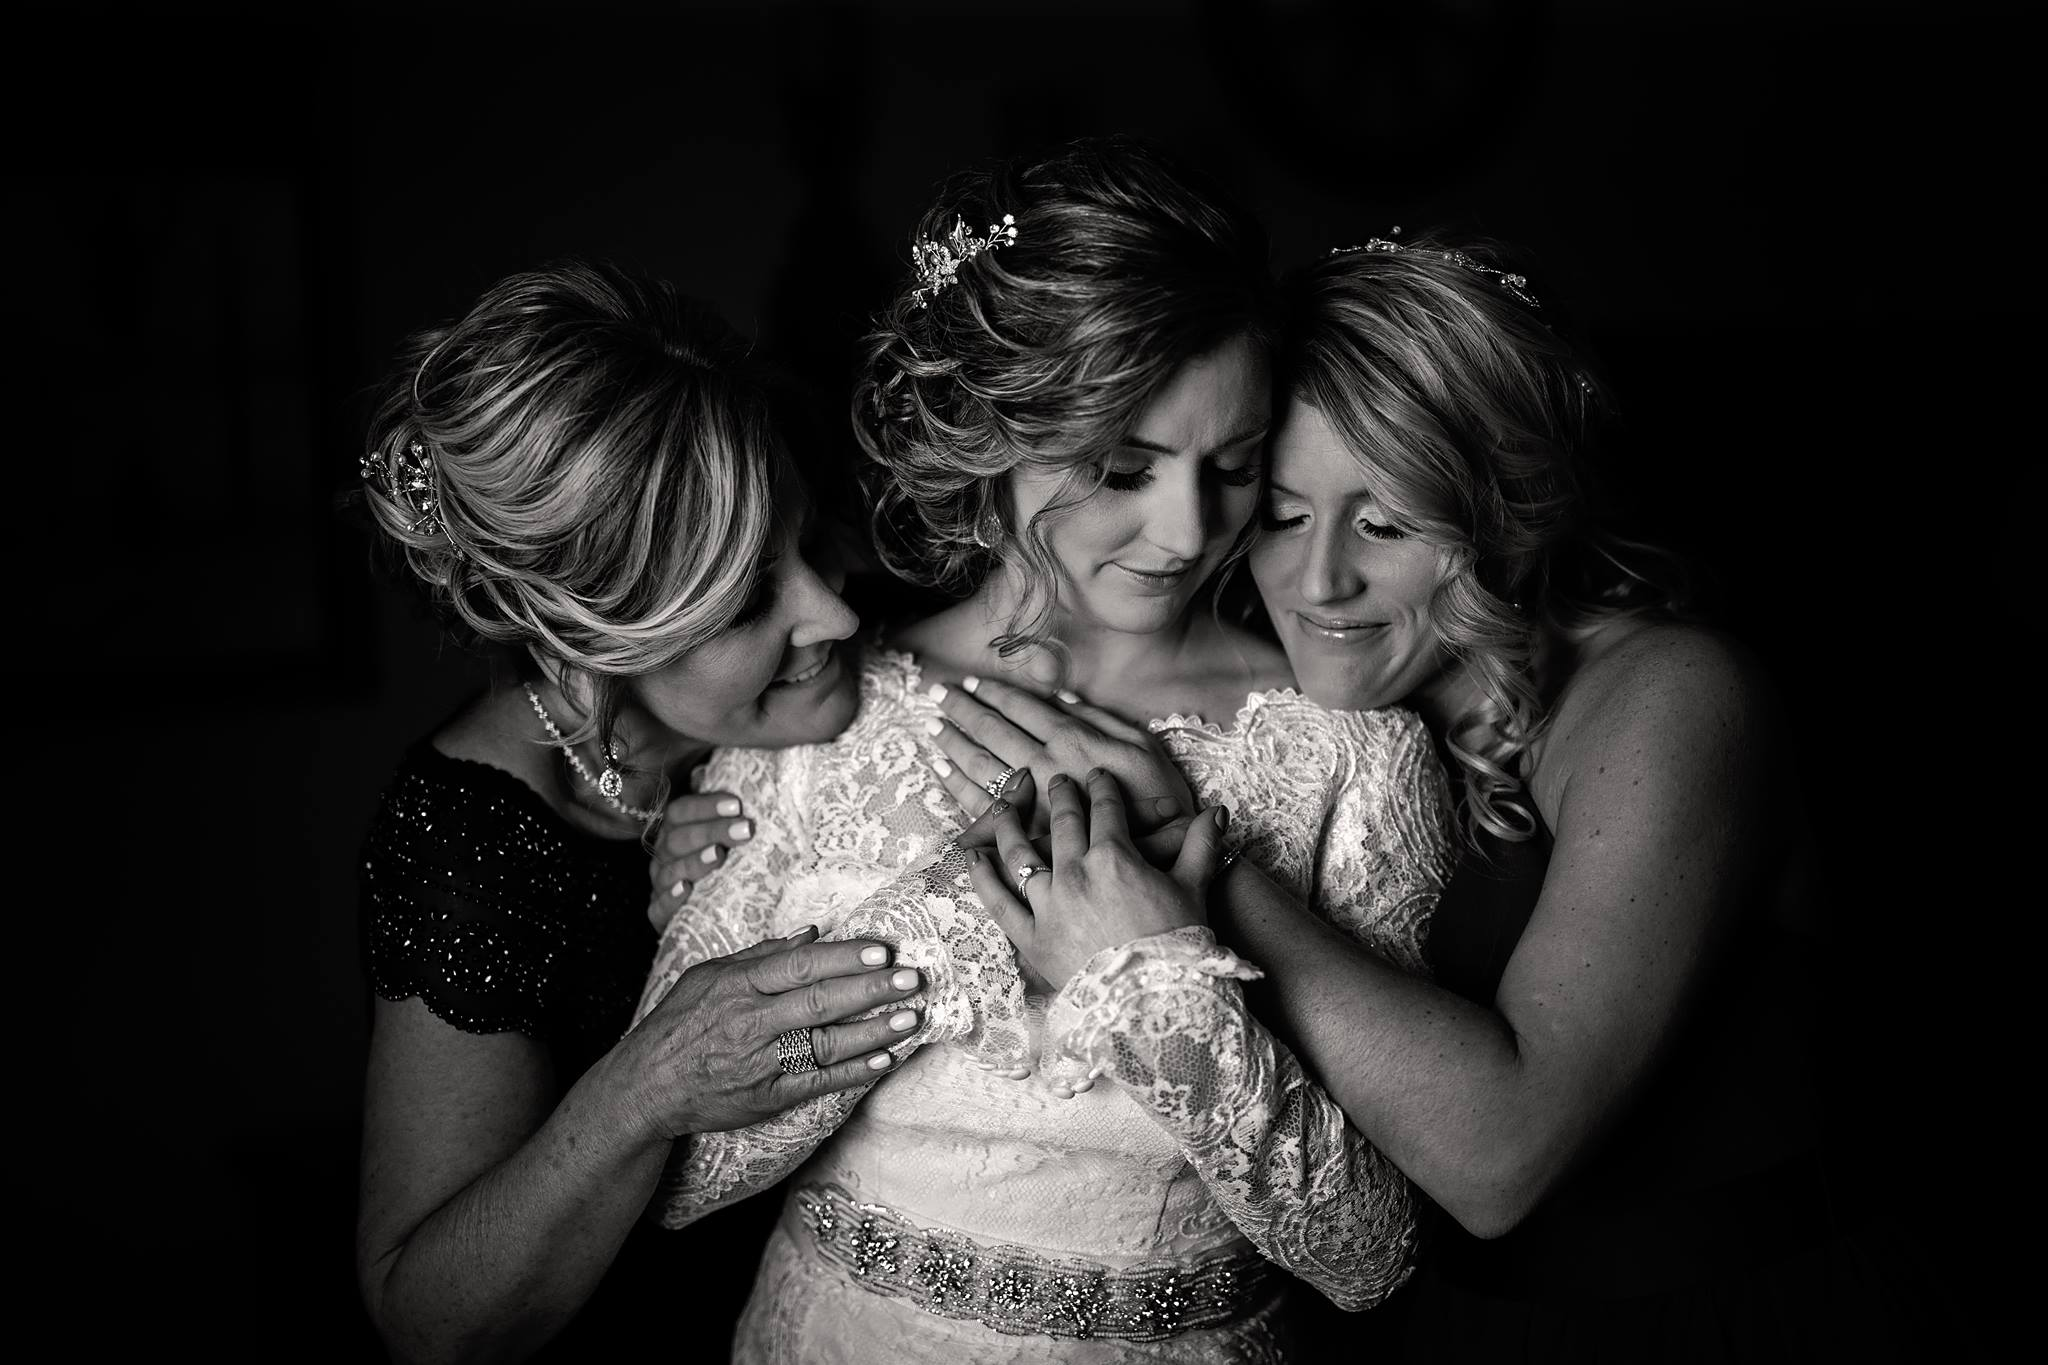 black-and-white-bride-mother-and-sister-hug-and-love-before-wedding.jpg